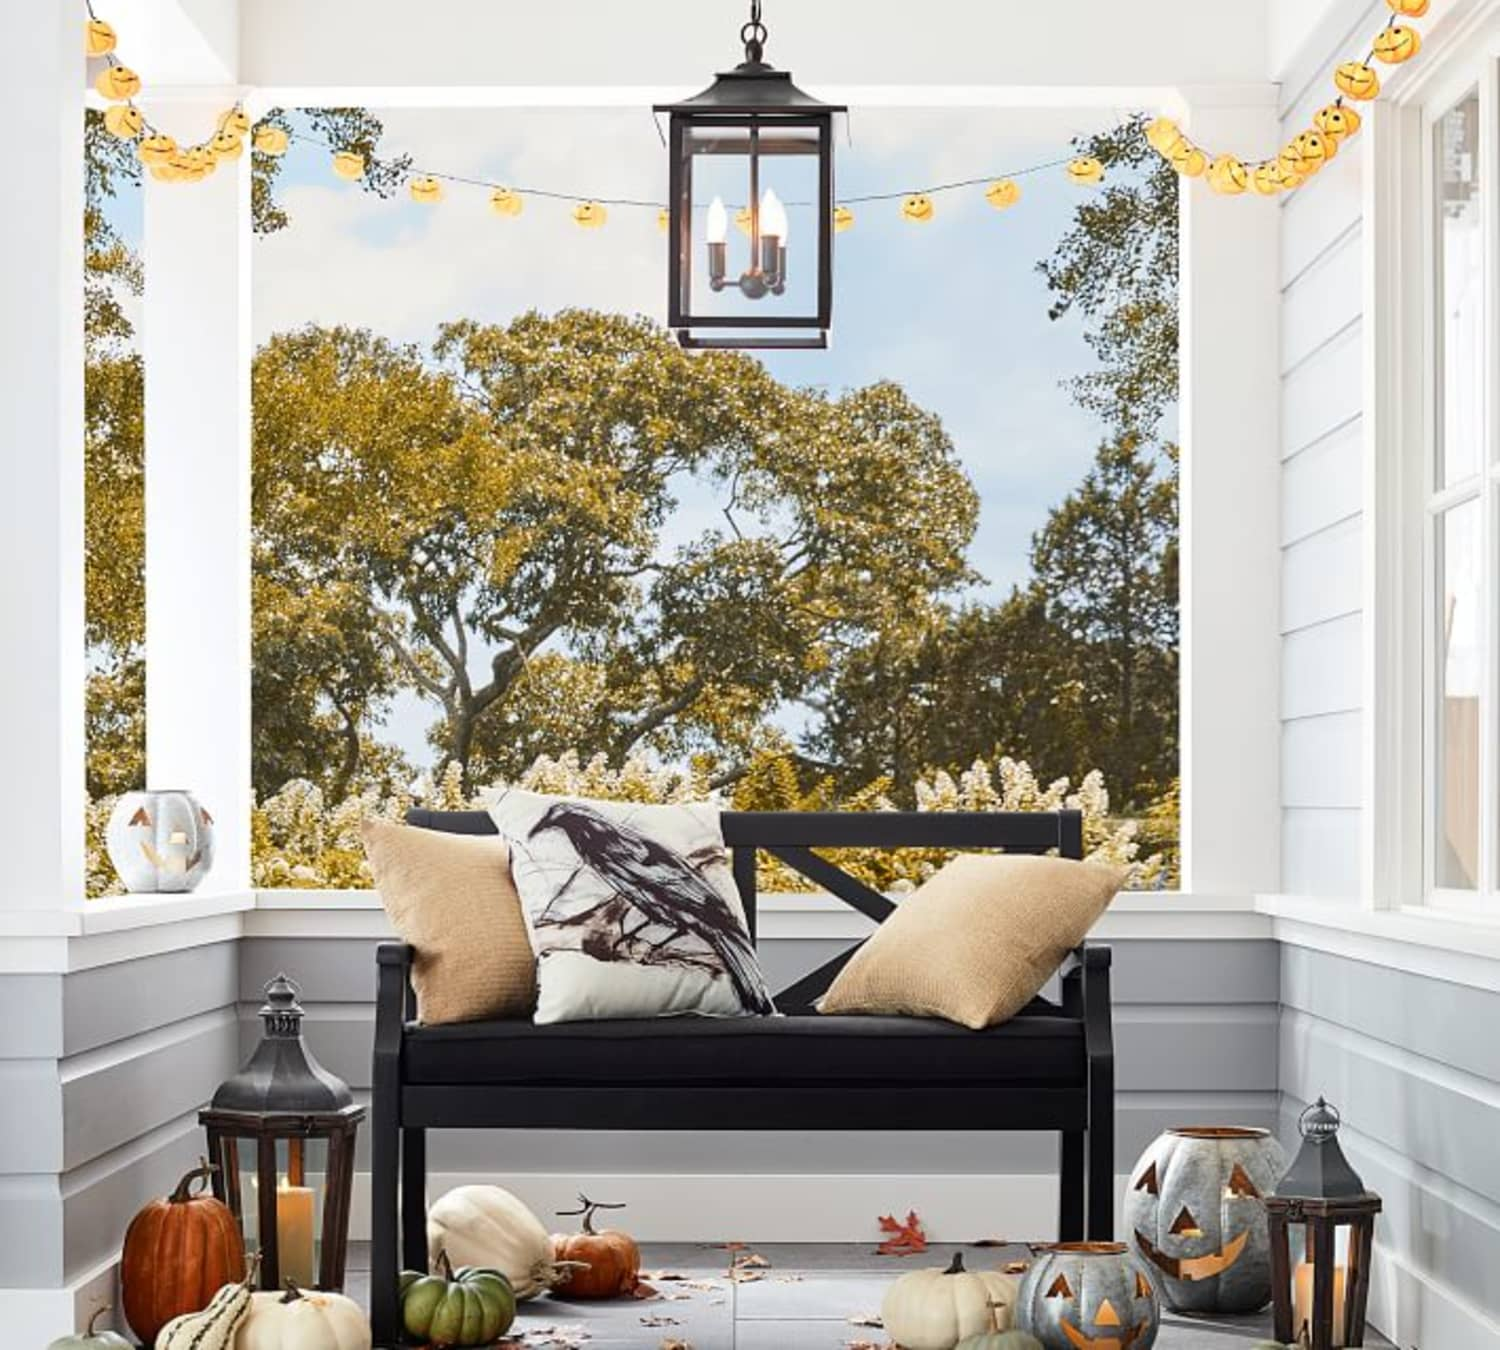 Pottery Barn Just Released its Halloween Decor, So Get Pump(kin)ed